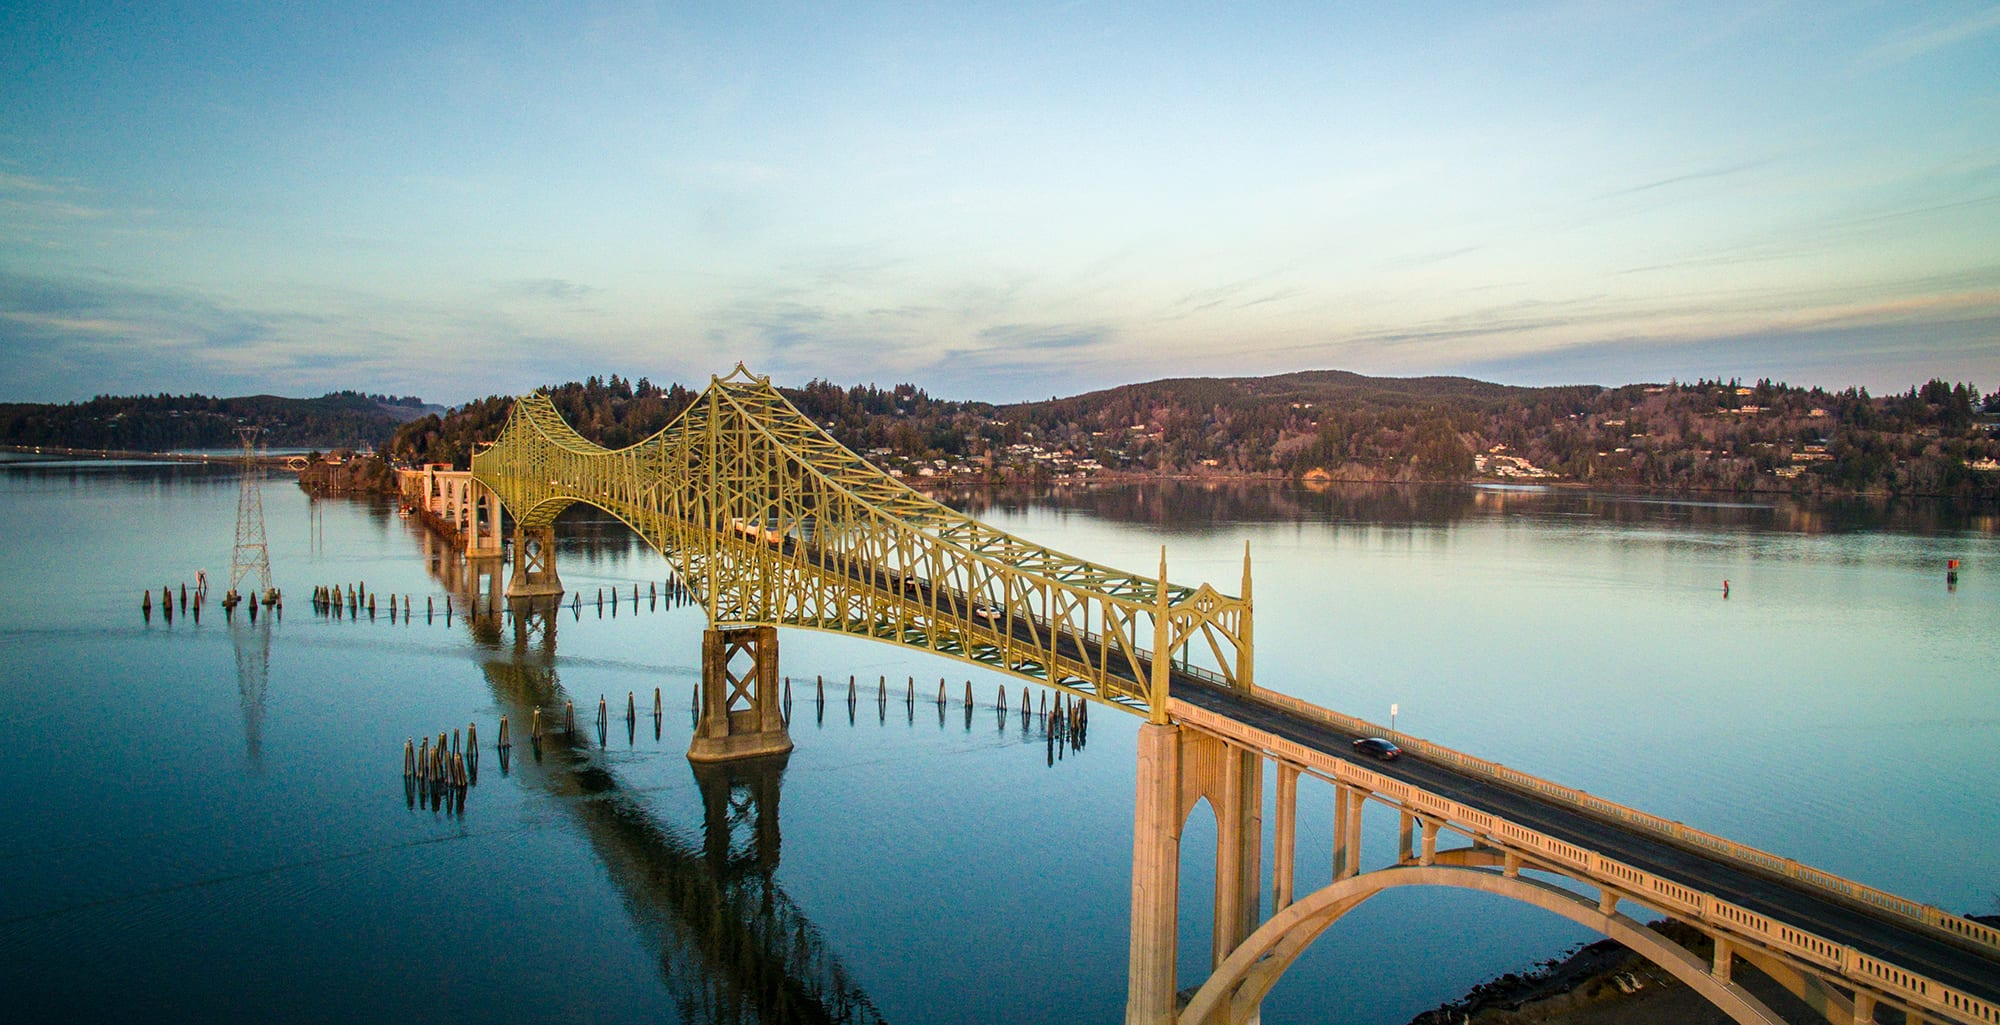 aerial photo of McCullough Memorial Bridge near Coos Bay Oregon